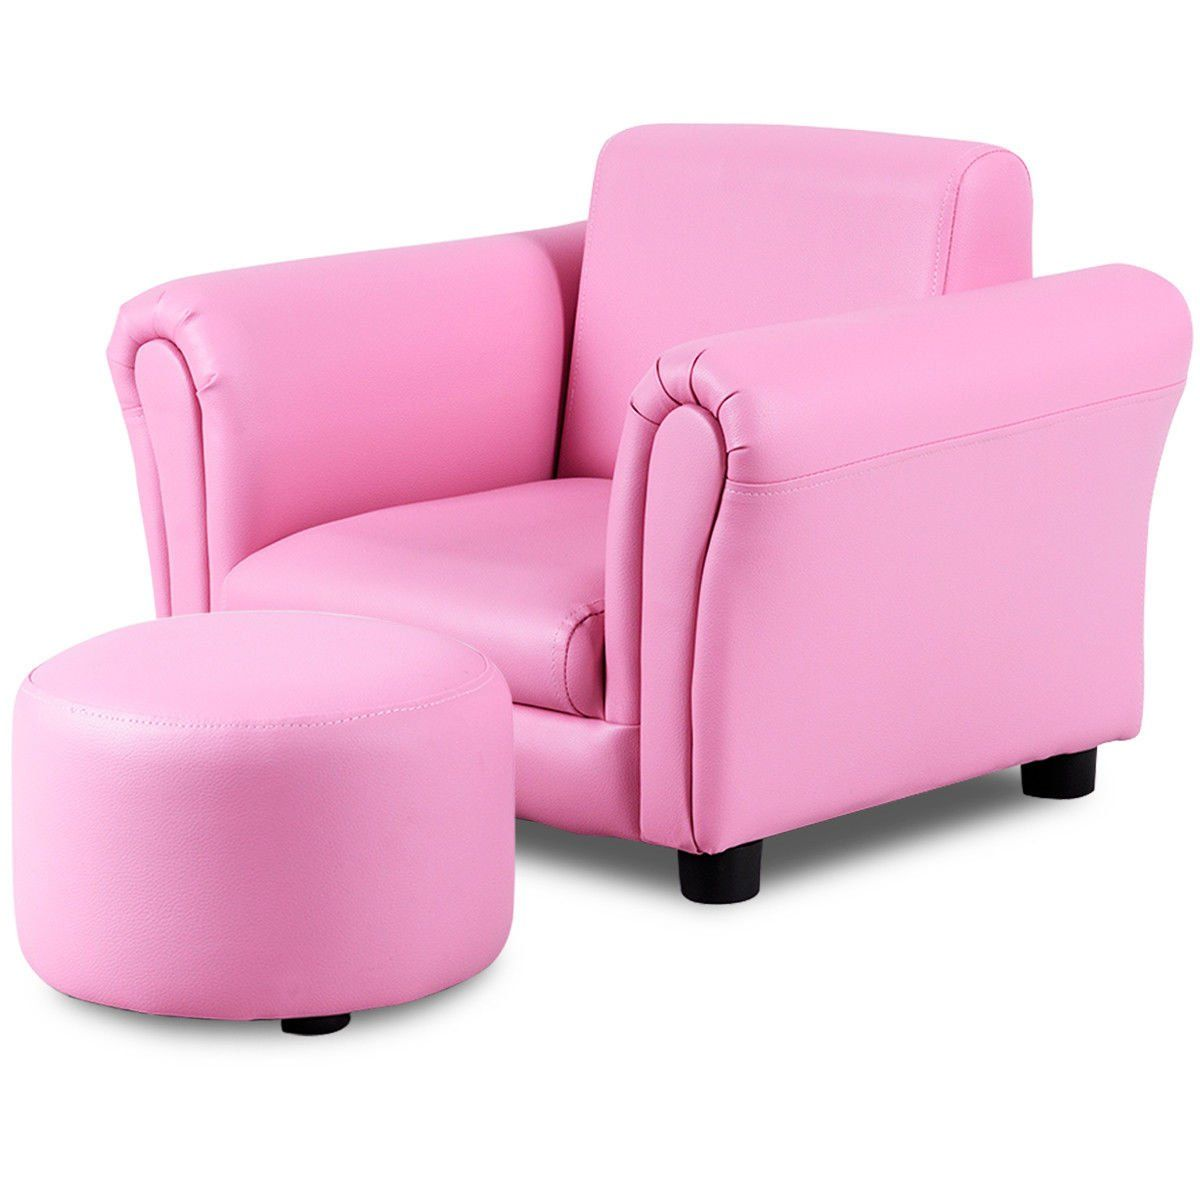 Costzon Kids Sofa Pu Leather Upholstered Armrest Sturdy Wood Construction Toddler Chair Pink Sofa With Footstool Kids Sofa Chair Single Sofa Chair Kids Sofa